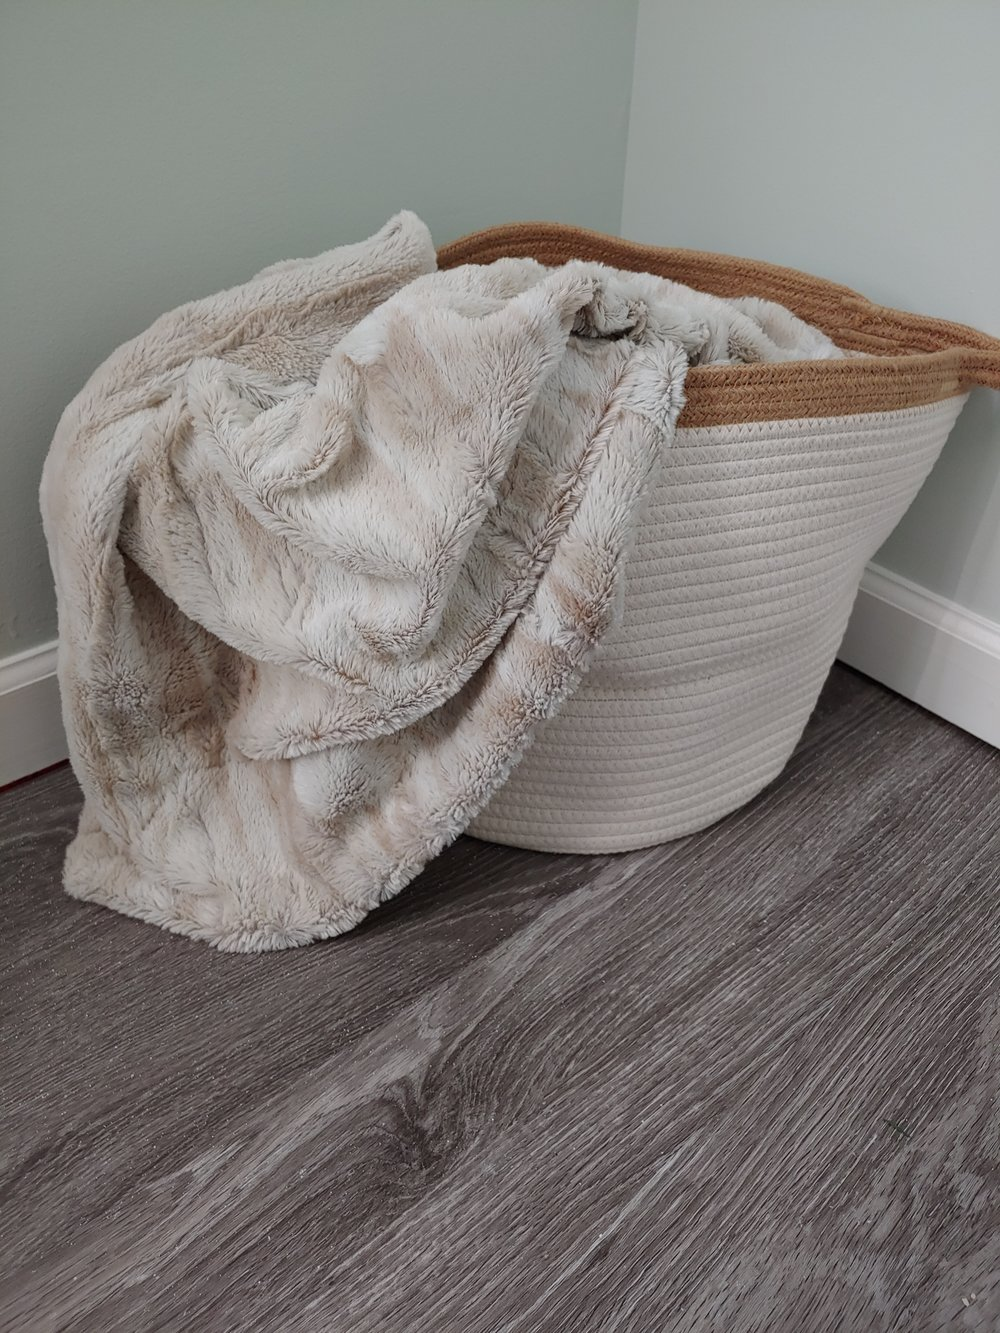 This weaved basket is from amazon. Admittedly I bought this with out paying attention to he size😂. Instead of putting blankets in it I think I may look for a potted plant to put in it.